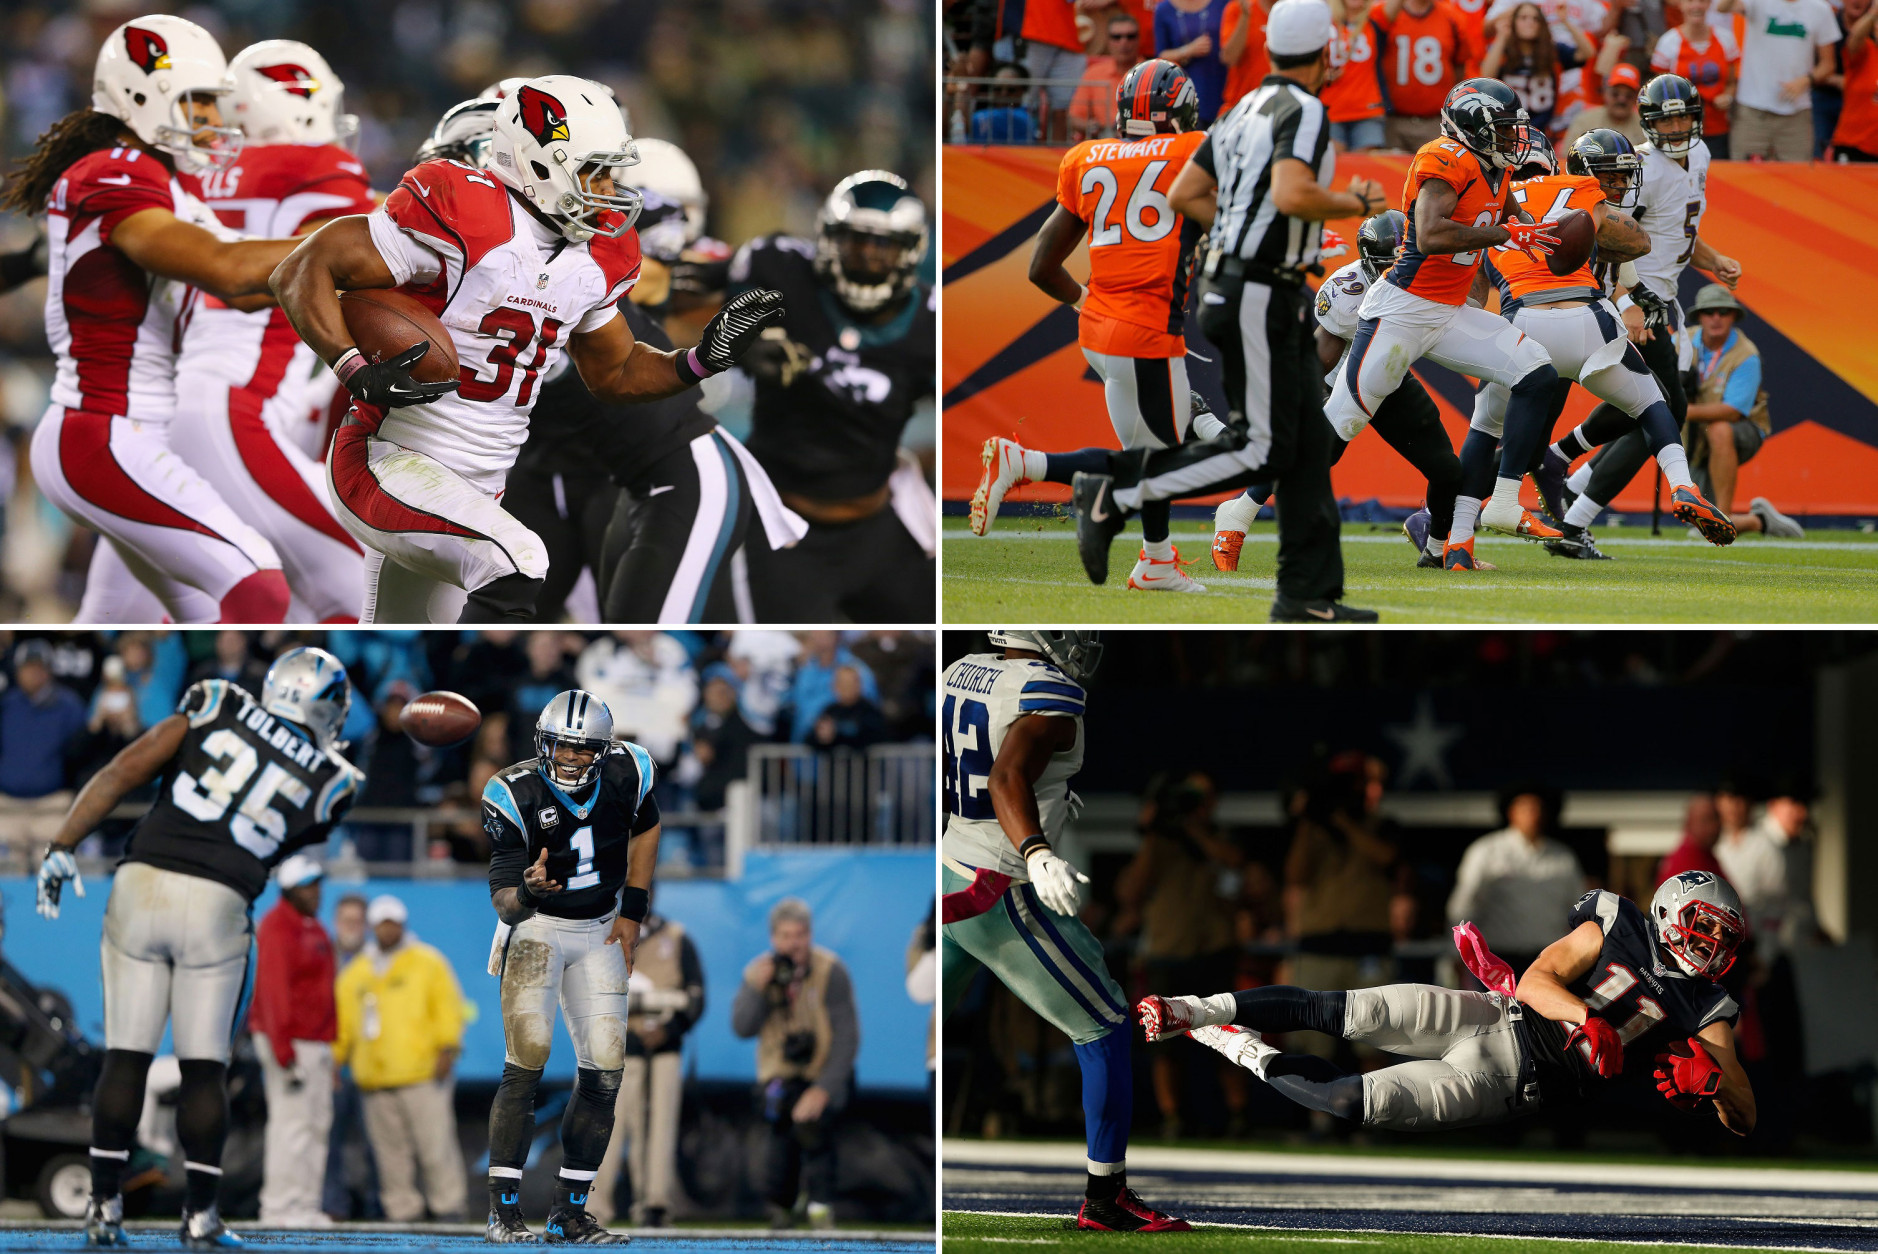 Will the top seeds roll through, or will there be surprises in this year's NFL playoff bracket?